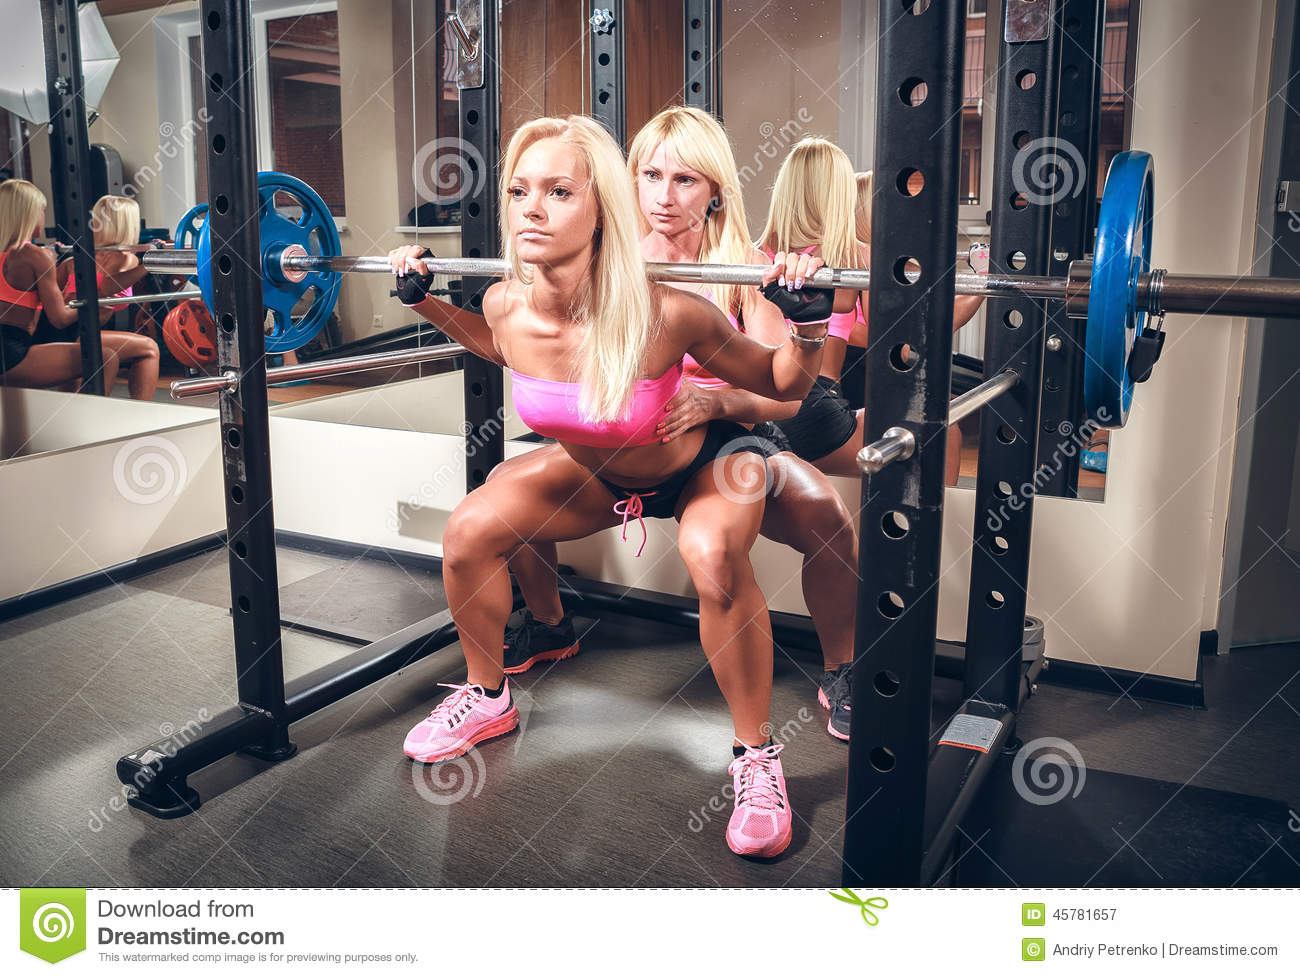 Sexy women at the gym